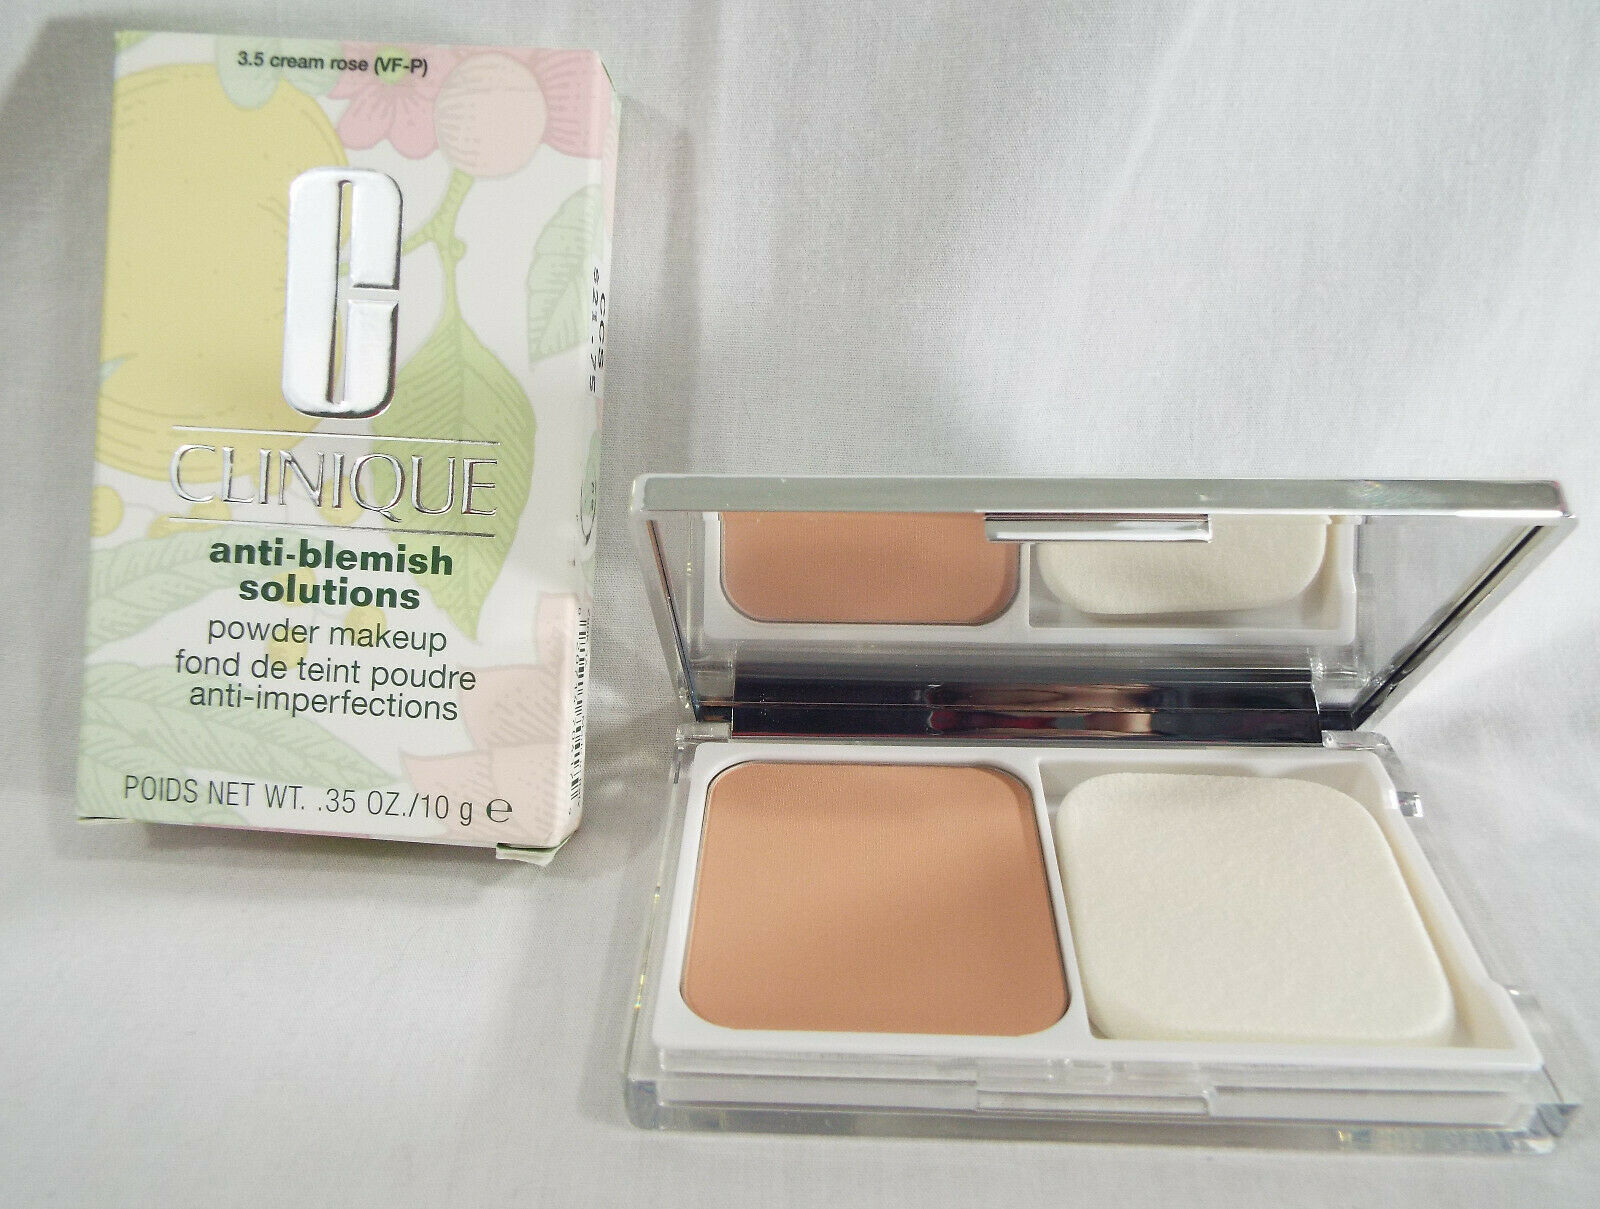 Primary image for Clinique Anti-Blemish Solutions Powder Makeup in Cream Rose 3.5 VF-P